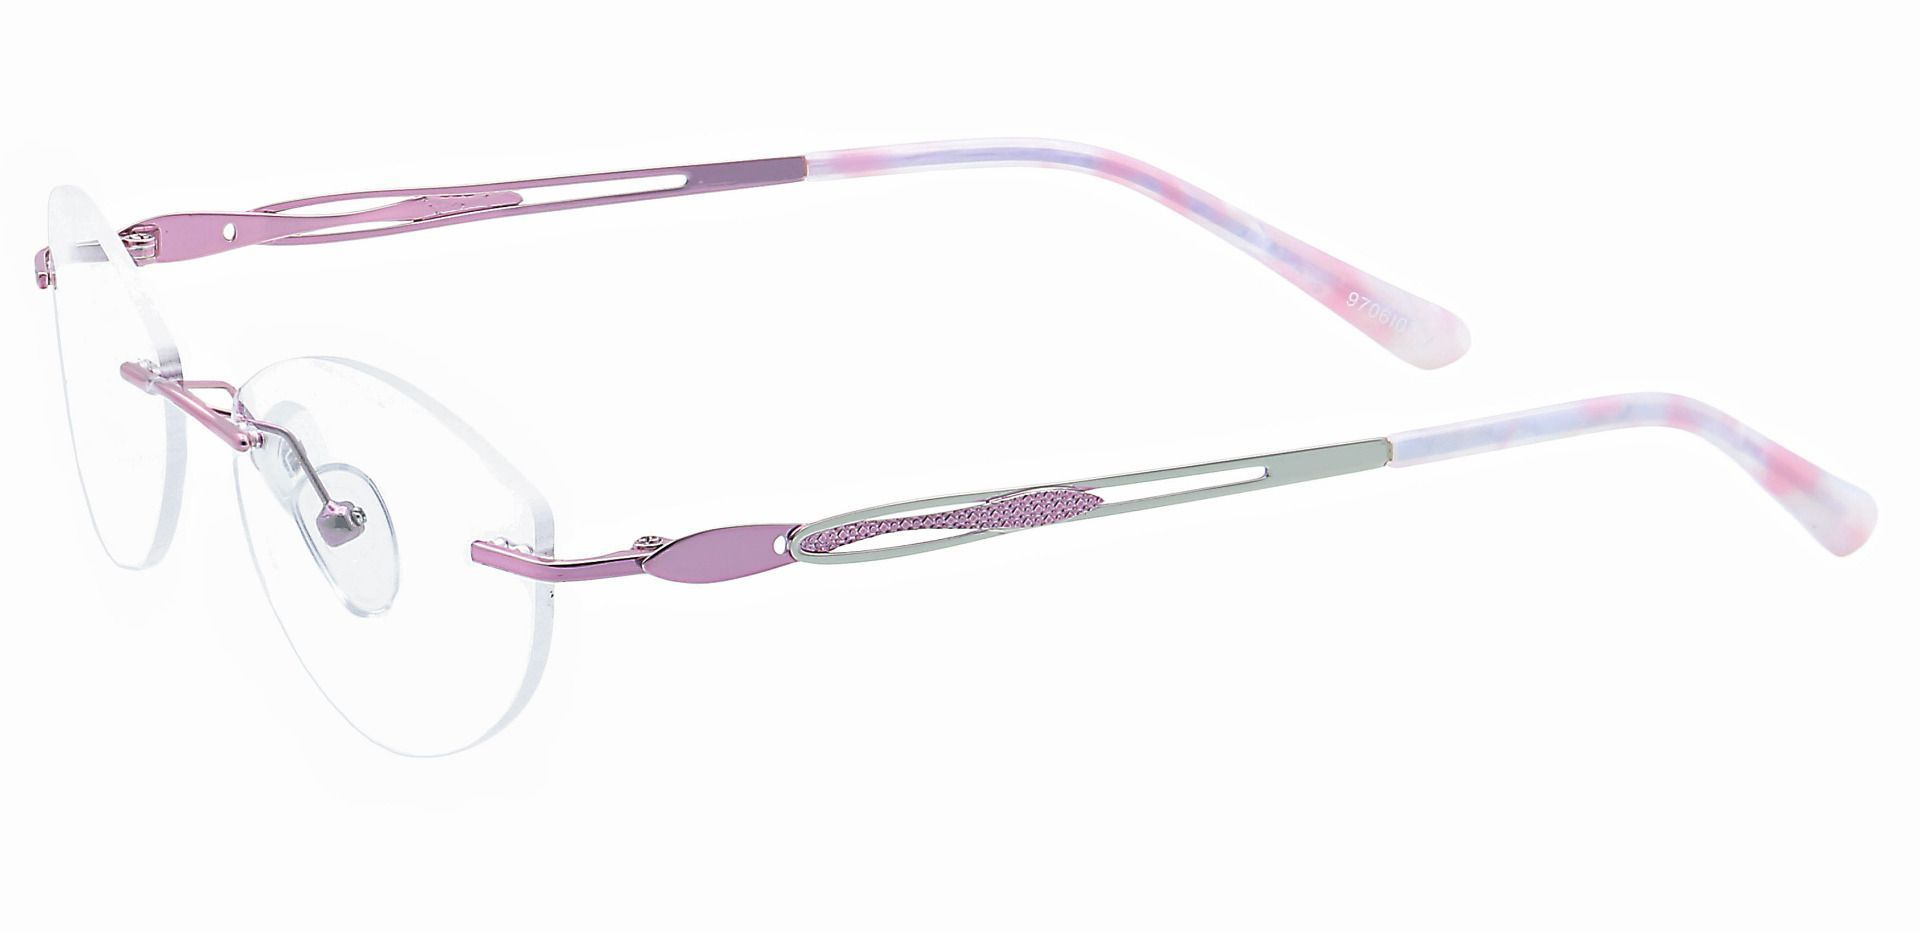 Fairy Rimless Reading Glasses - Pink